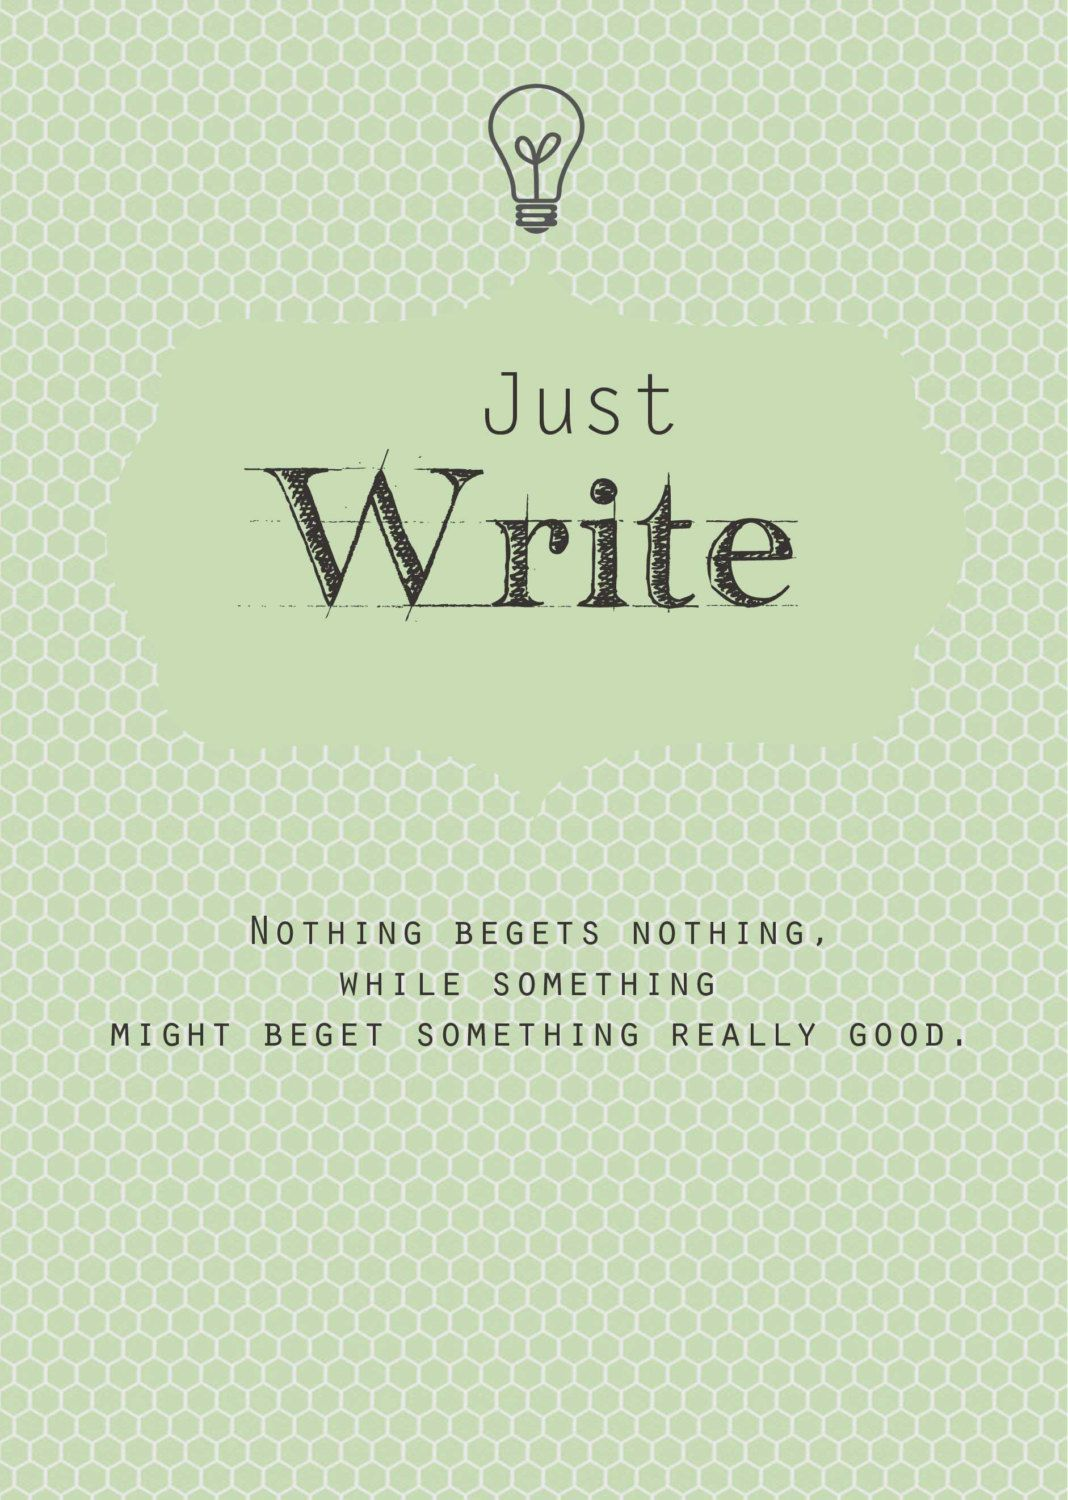 writing motivation print in mint green just write new years writing motivation print in mint green just write new years resolution inspirational typography